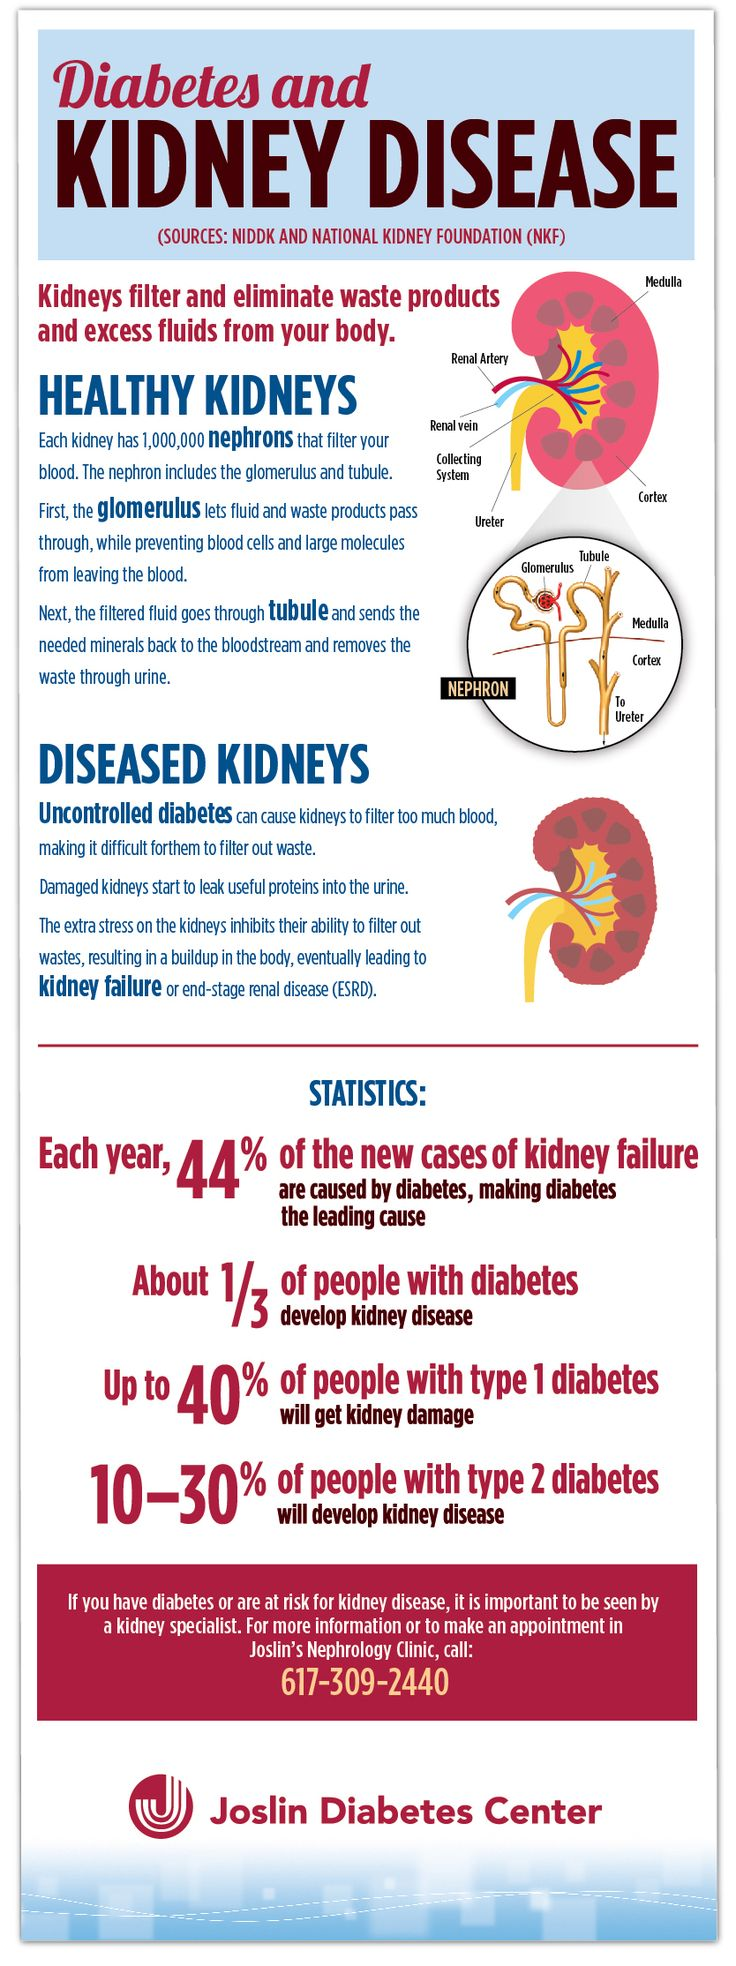 Diabetic Coma And Kidney Failure 2019